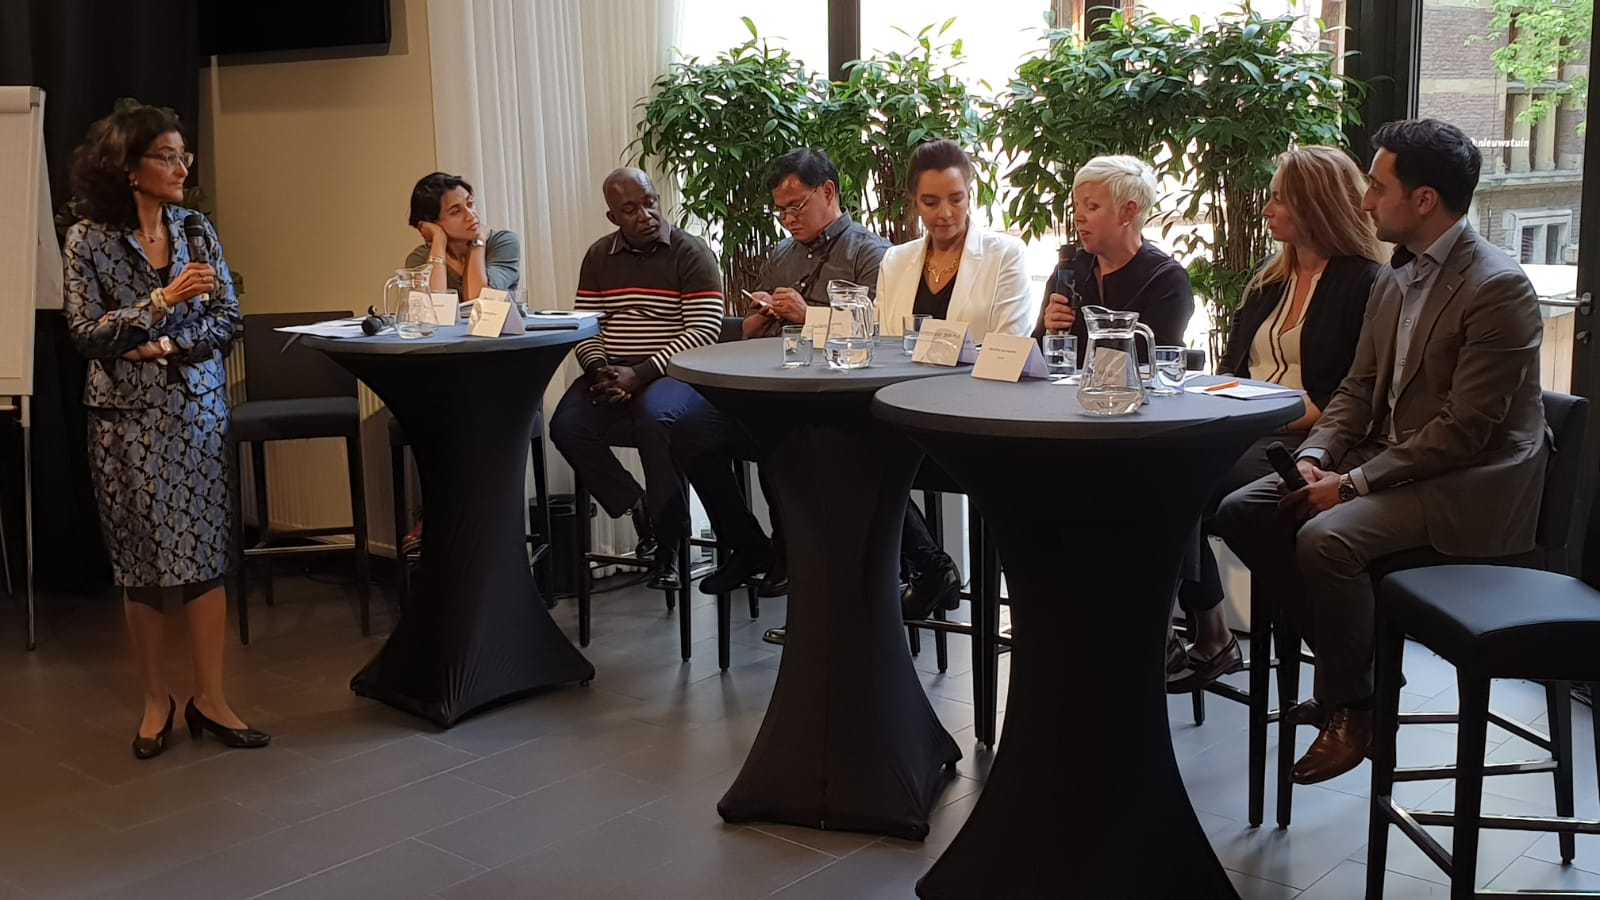 Panel discussion with lobby tour participants and parliamentarians in the Hague2